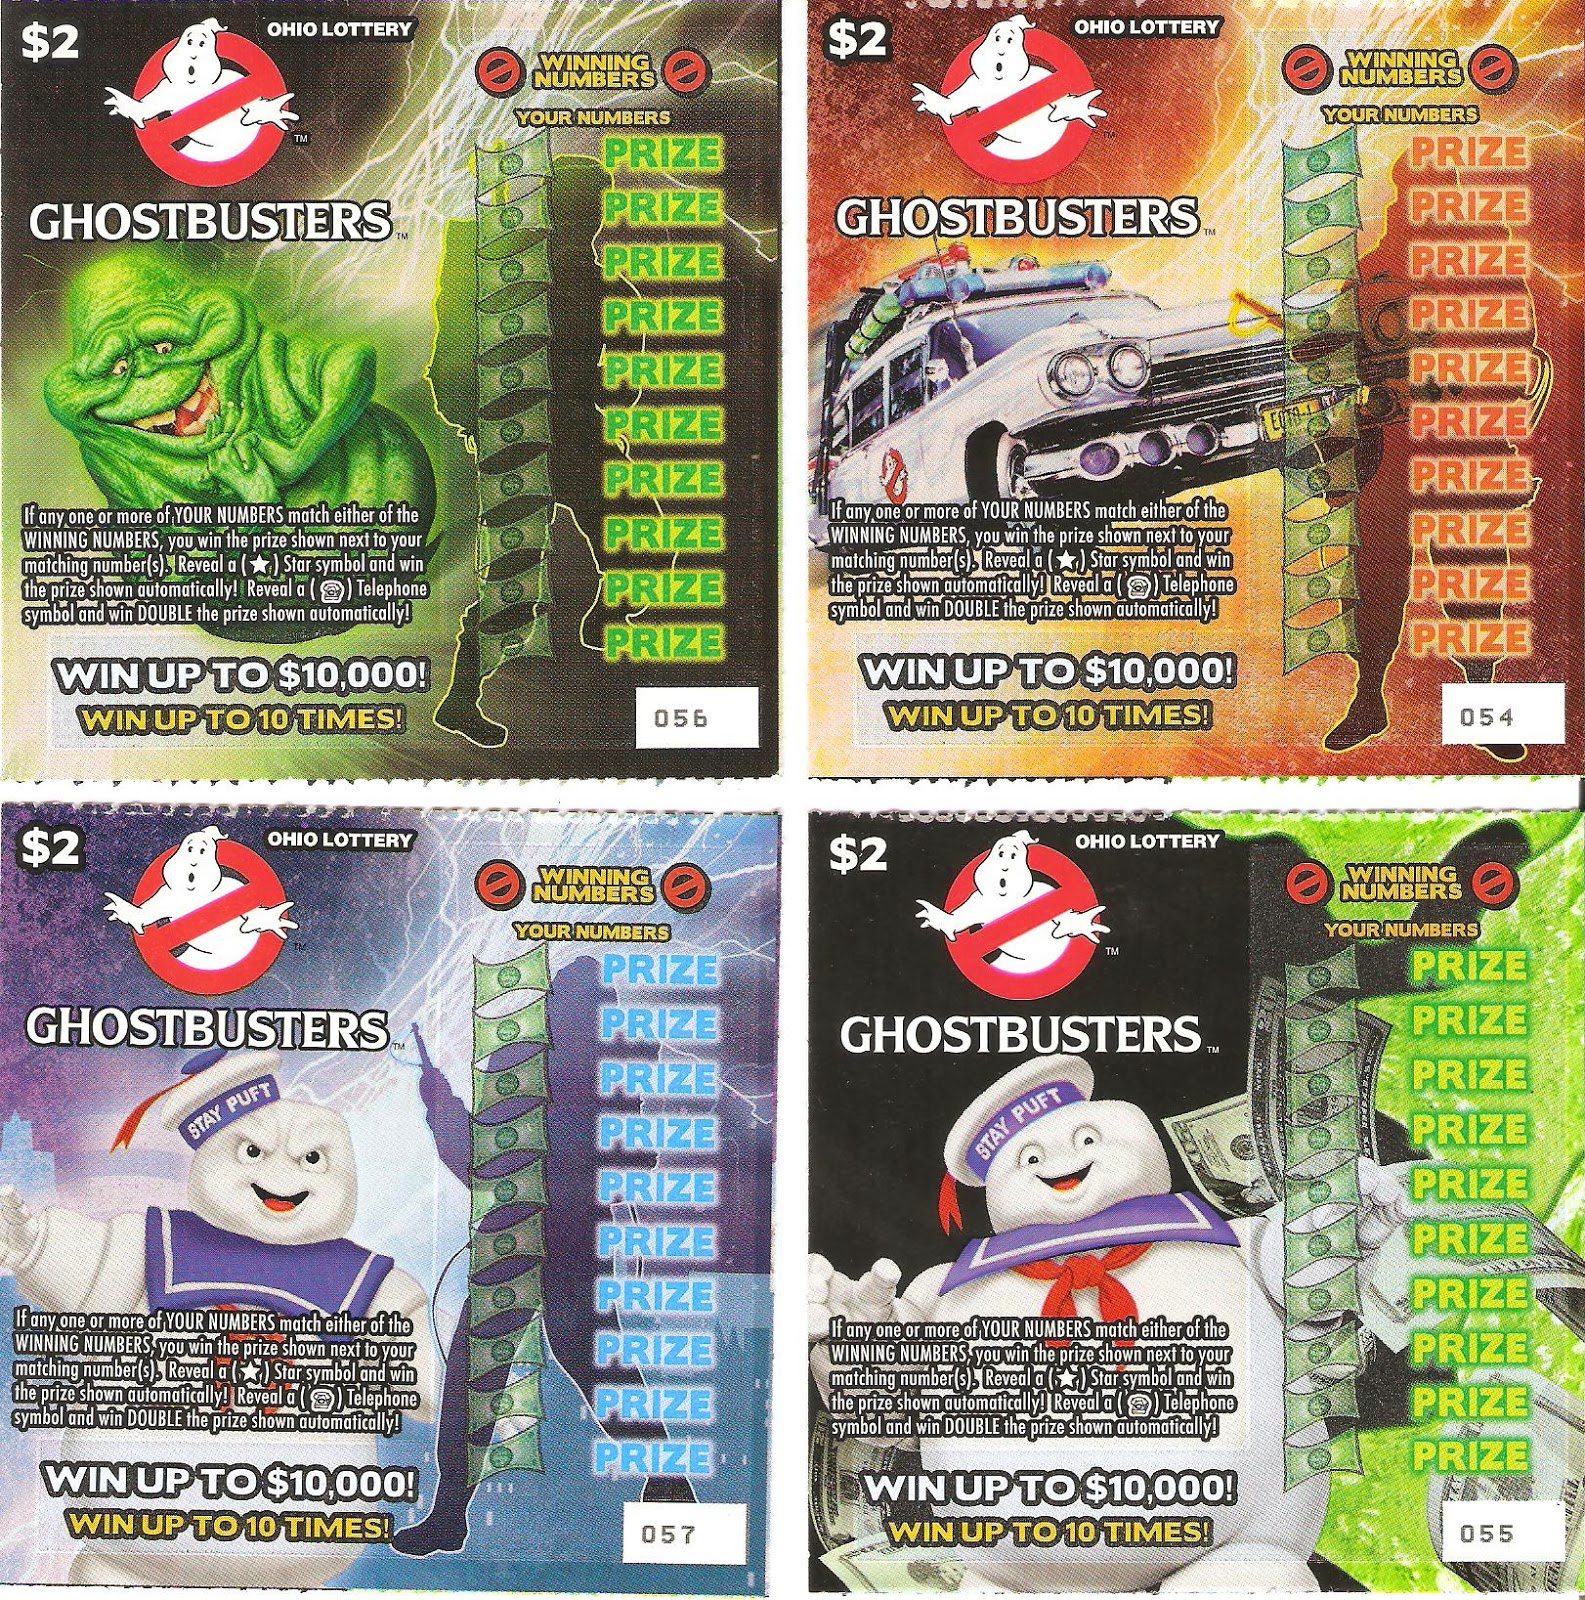 Wonderful Wonderblog: Ghostbusters Ohio Lottery Instant Tickets